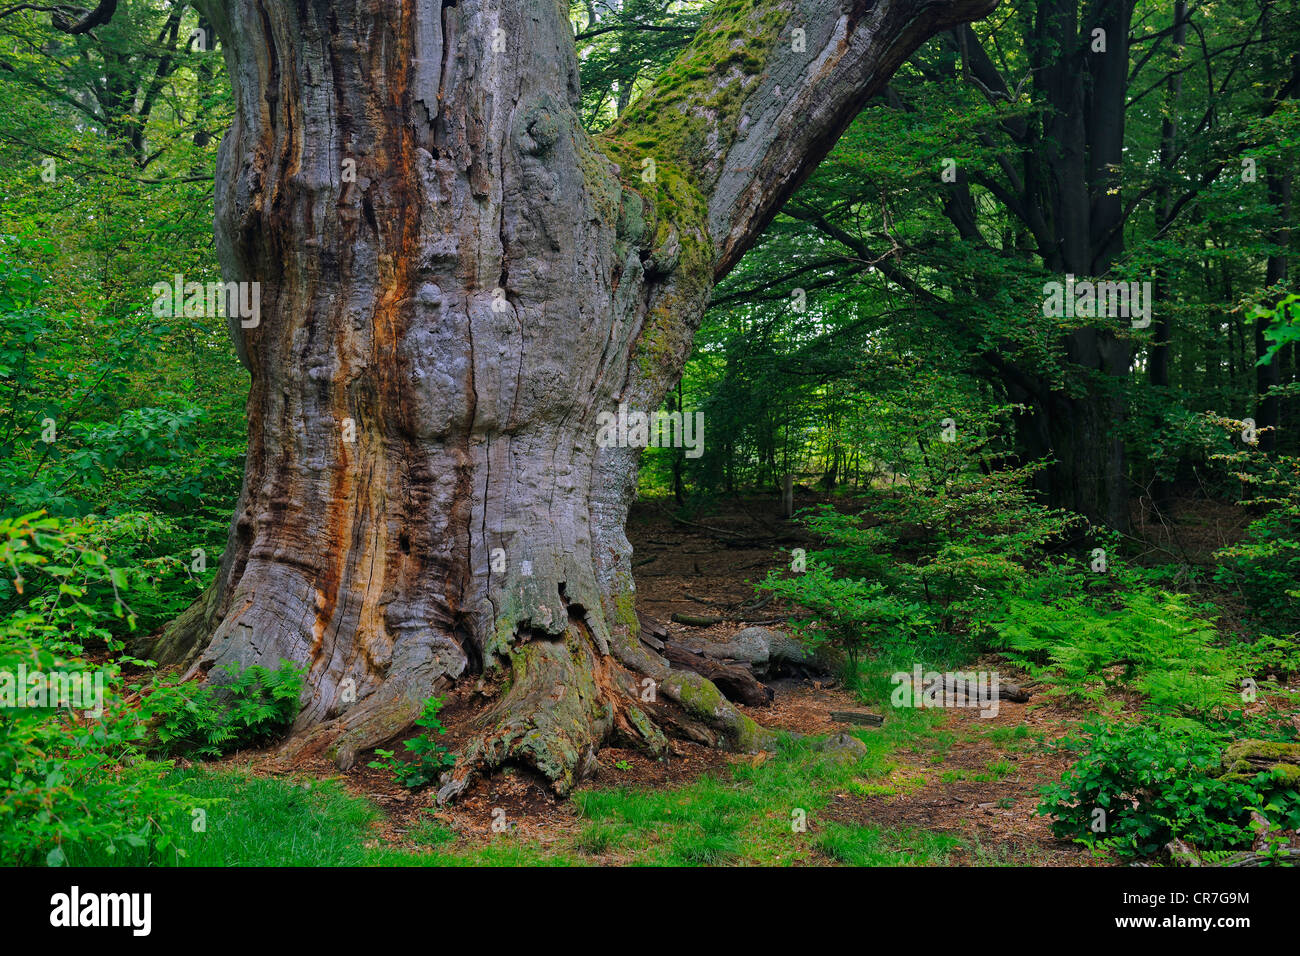 Ca. 800 year old beech (Fagus), Urwald Sababurg nature reserve, Hesse, Germany, Europe - Stock Image